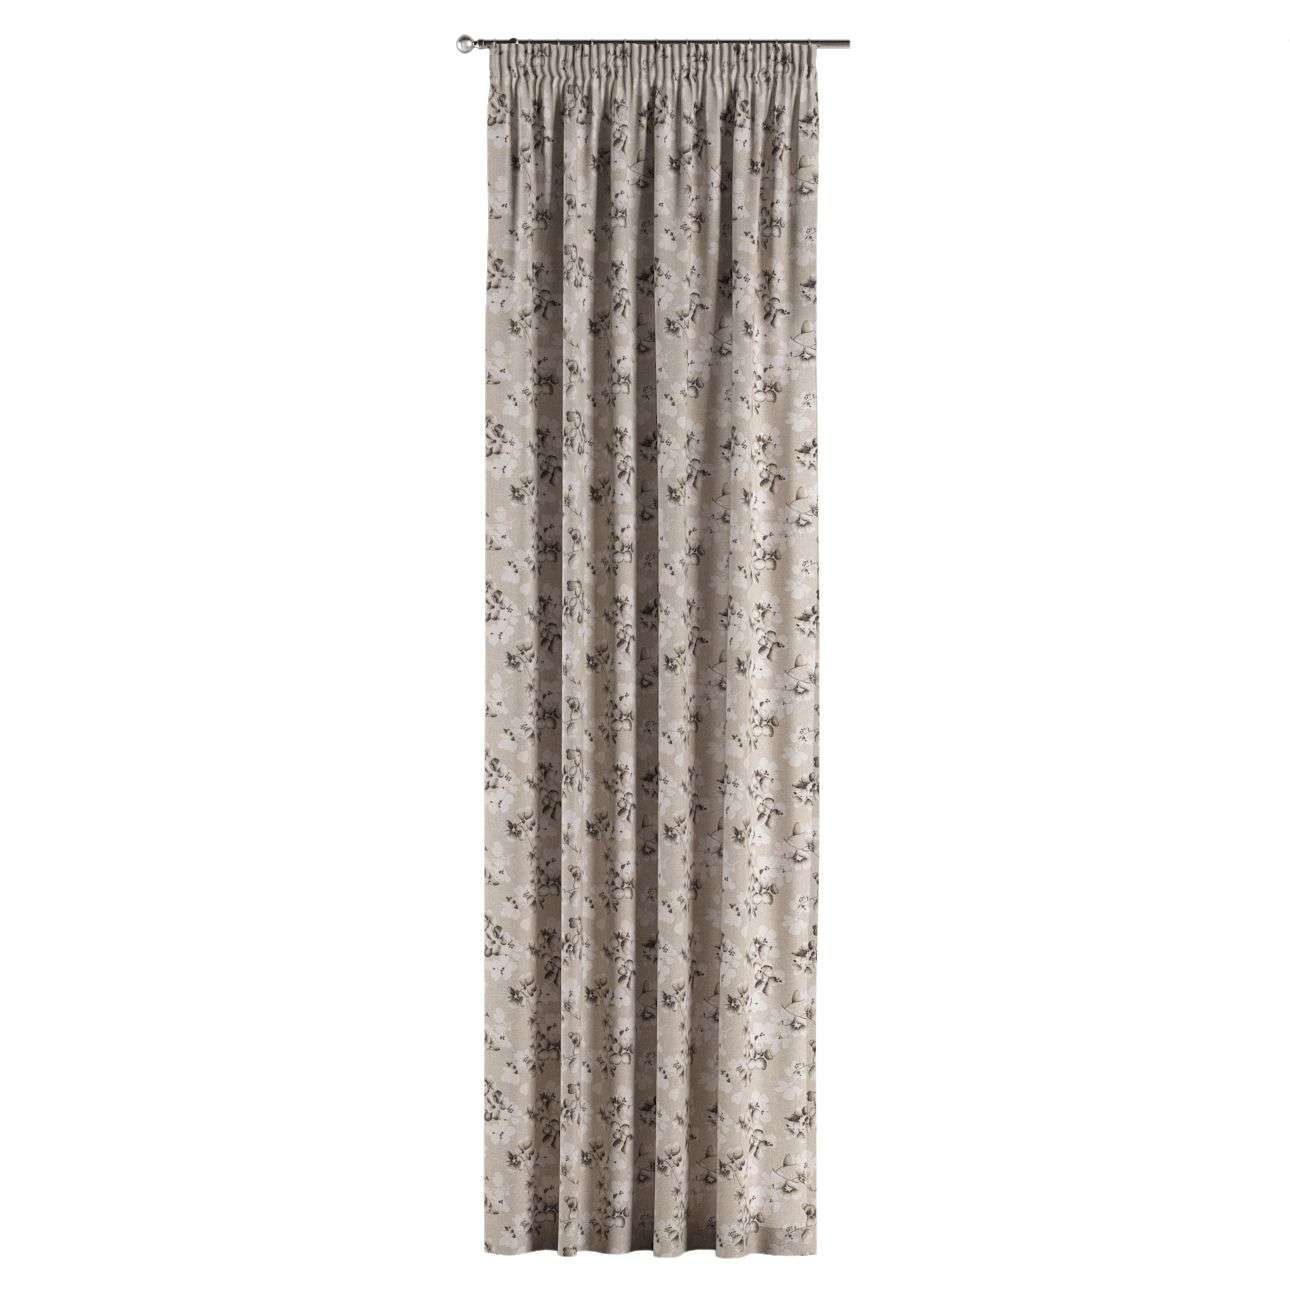 Pencil pleat curtains 130 x 260 cm (51 x 102 inch) in collection Rustica, fabric: 138-14